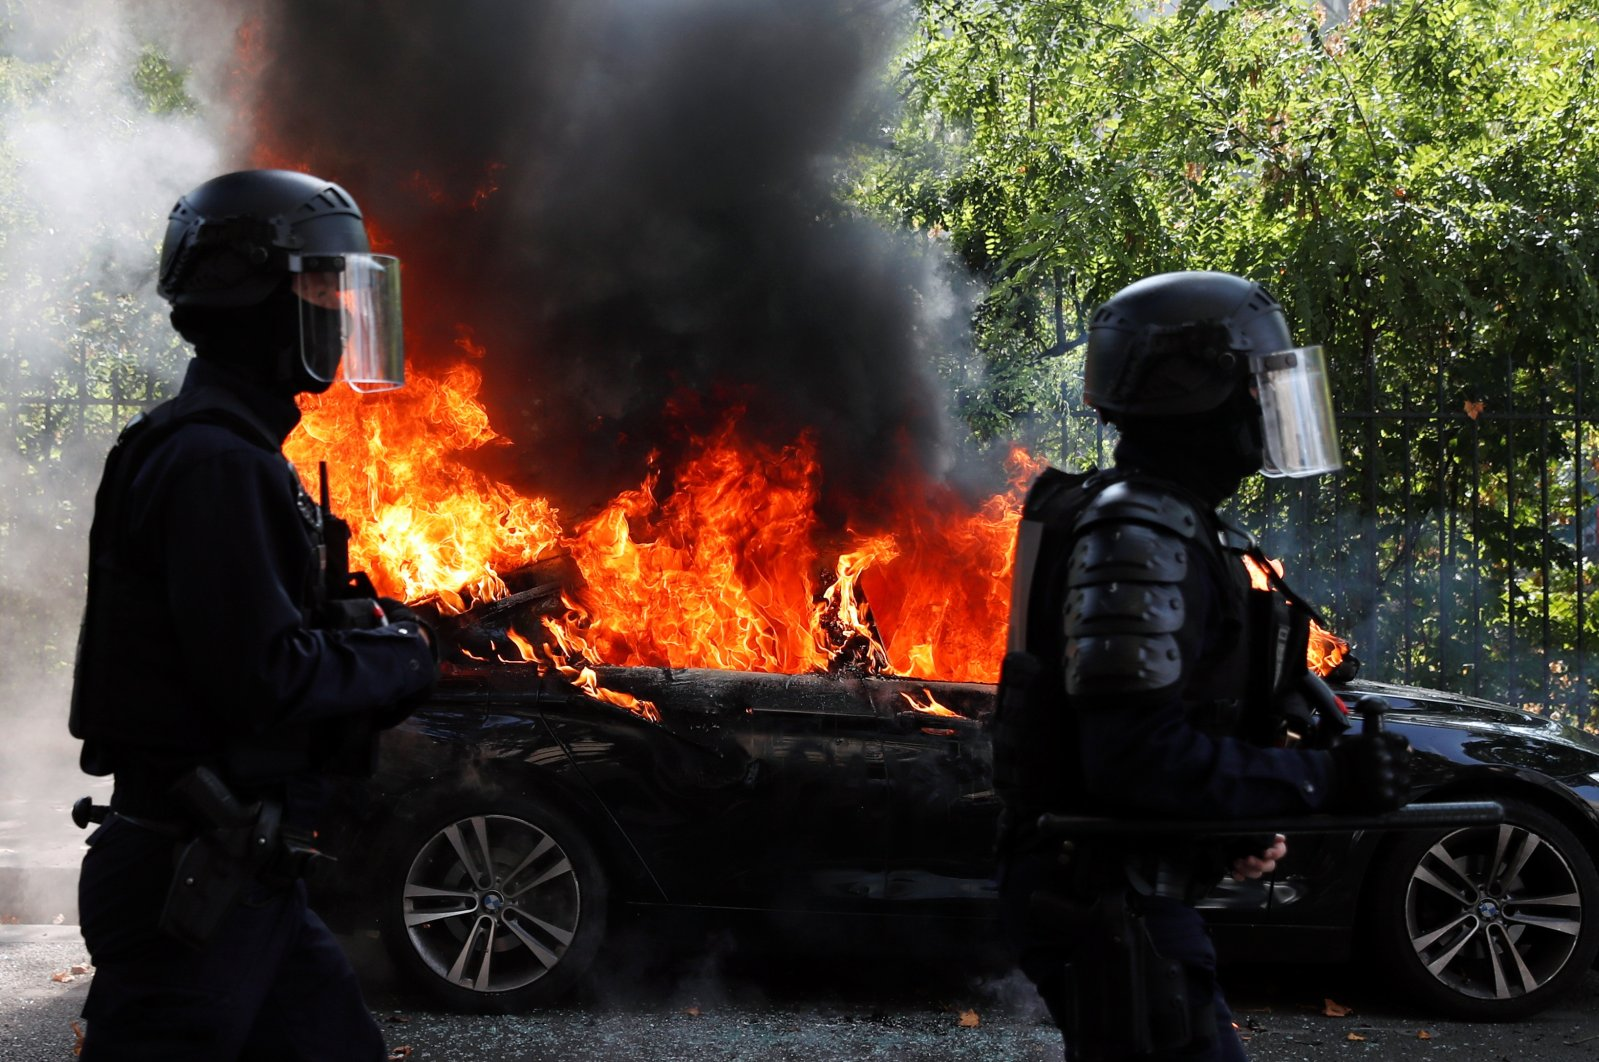 French CRS riot police officers walk past a burning car during a demonstration of the yellow vests movement in Paris, France Sept. 12, 2020. (Reuters Photo)